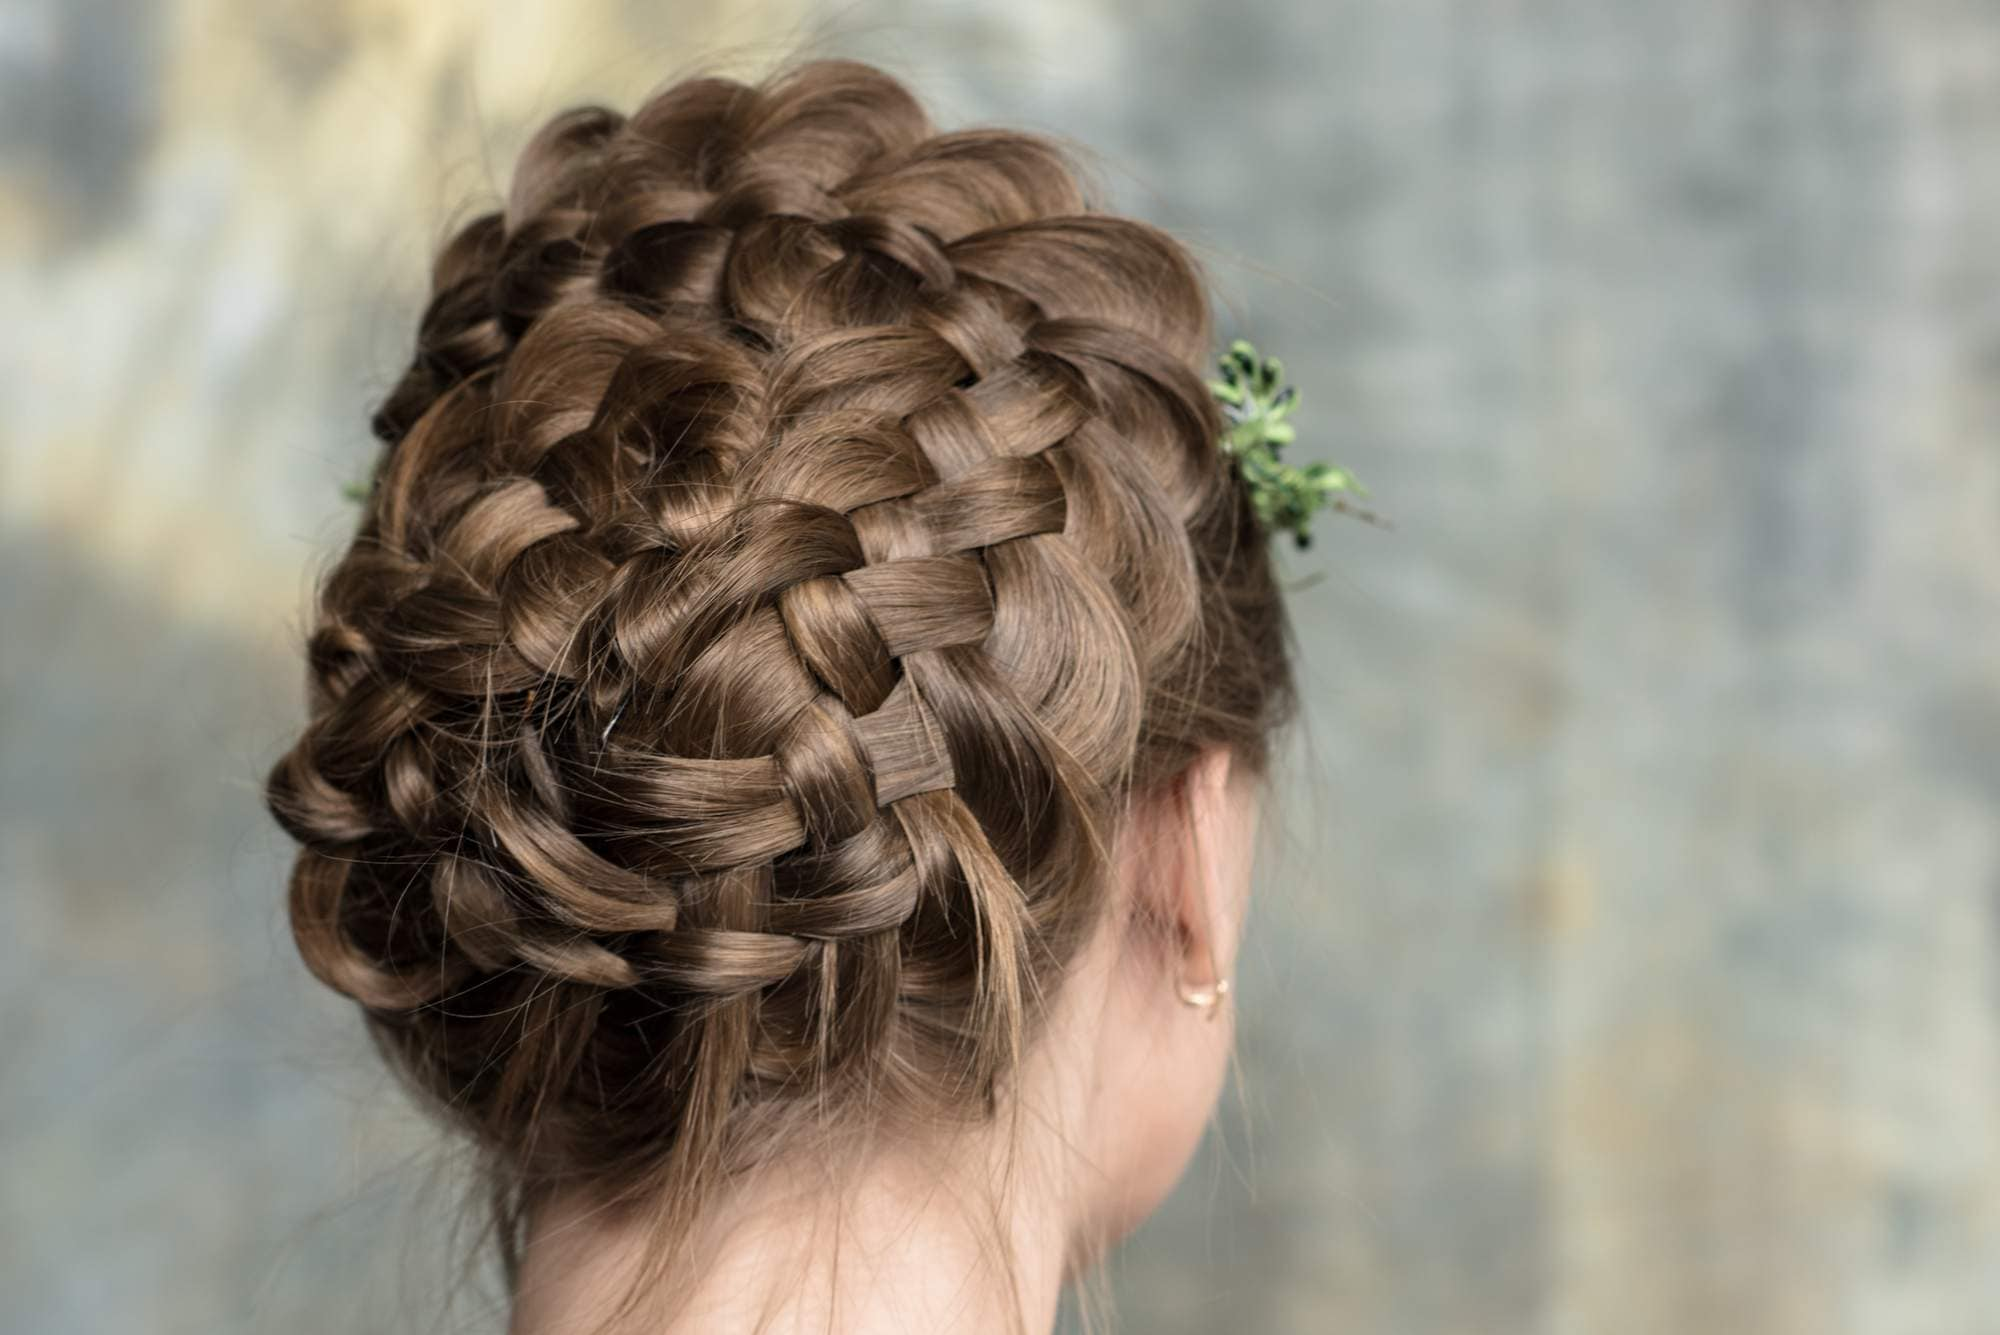 39 Beautiful Wedding Braids To Try This Season